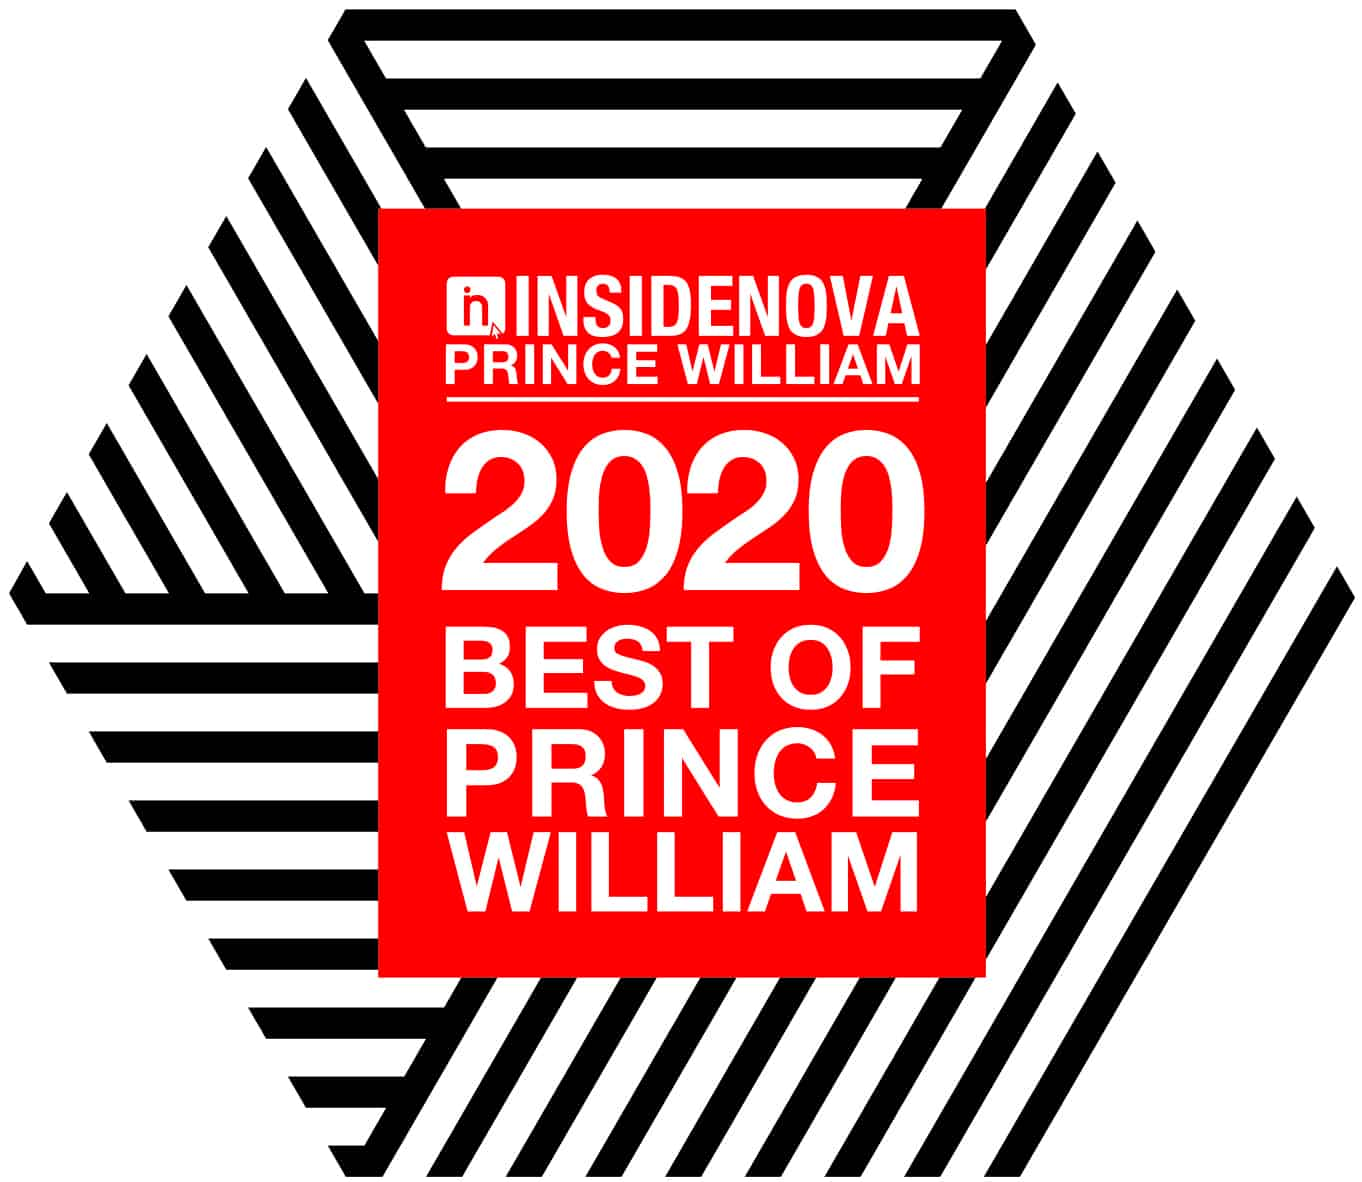 2020 Best of Prince William